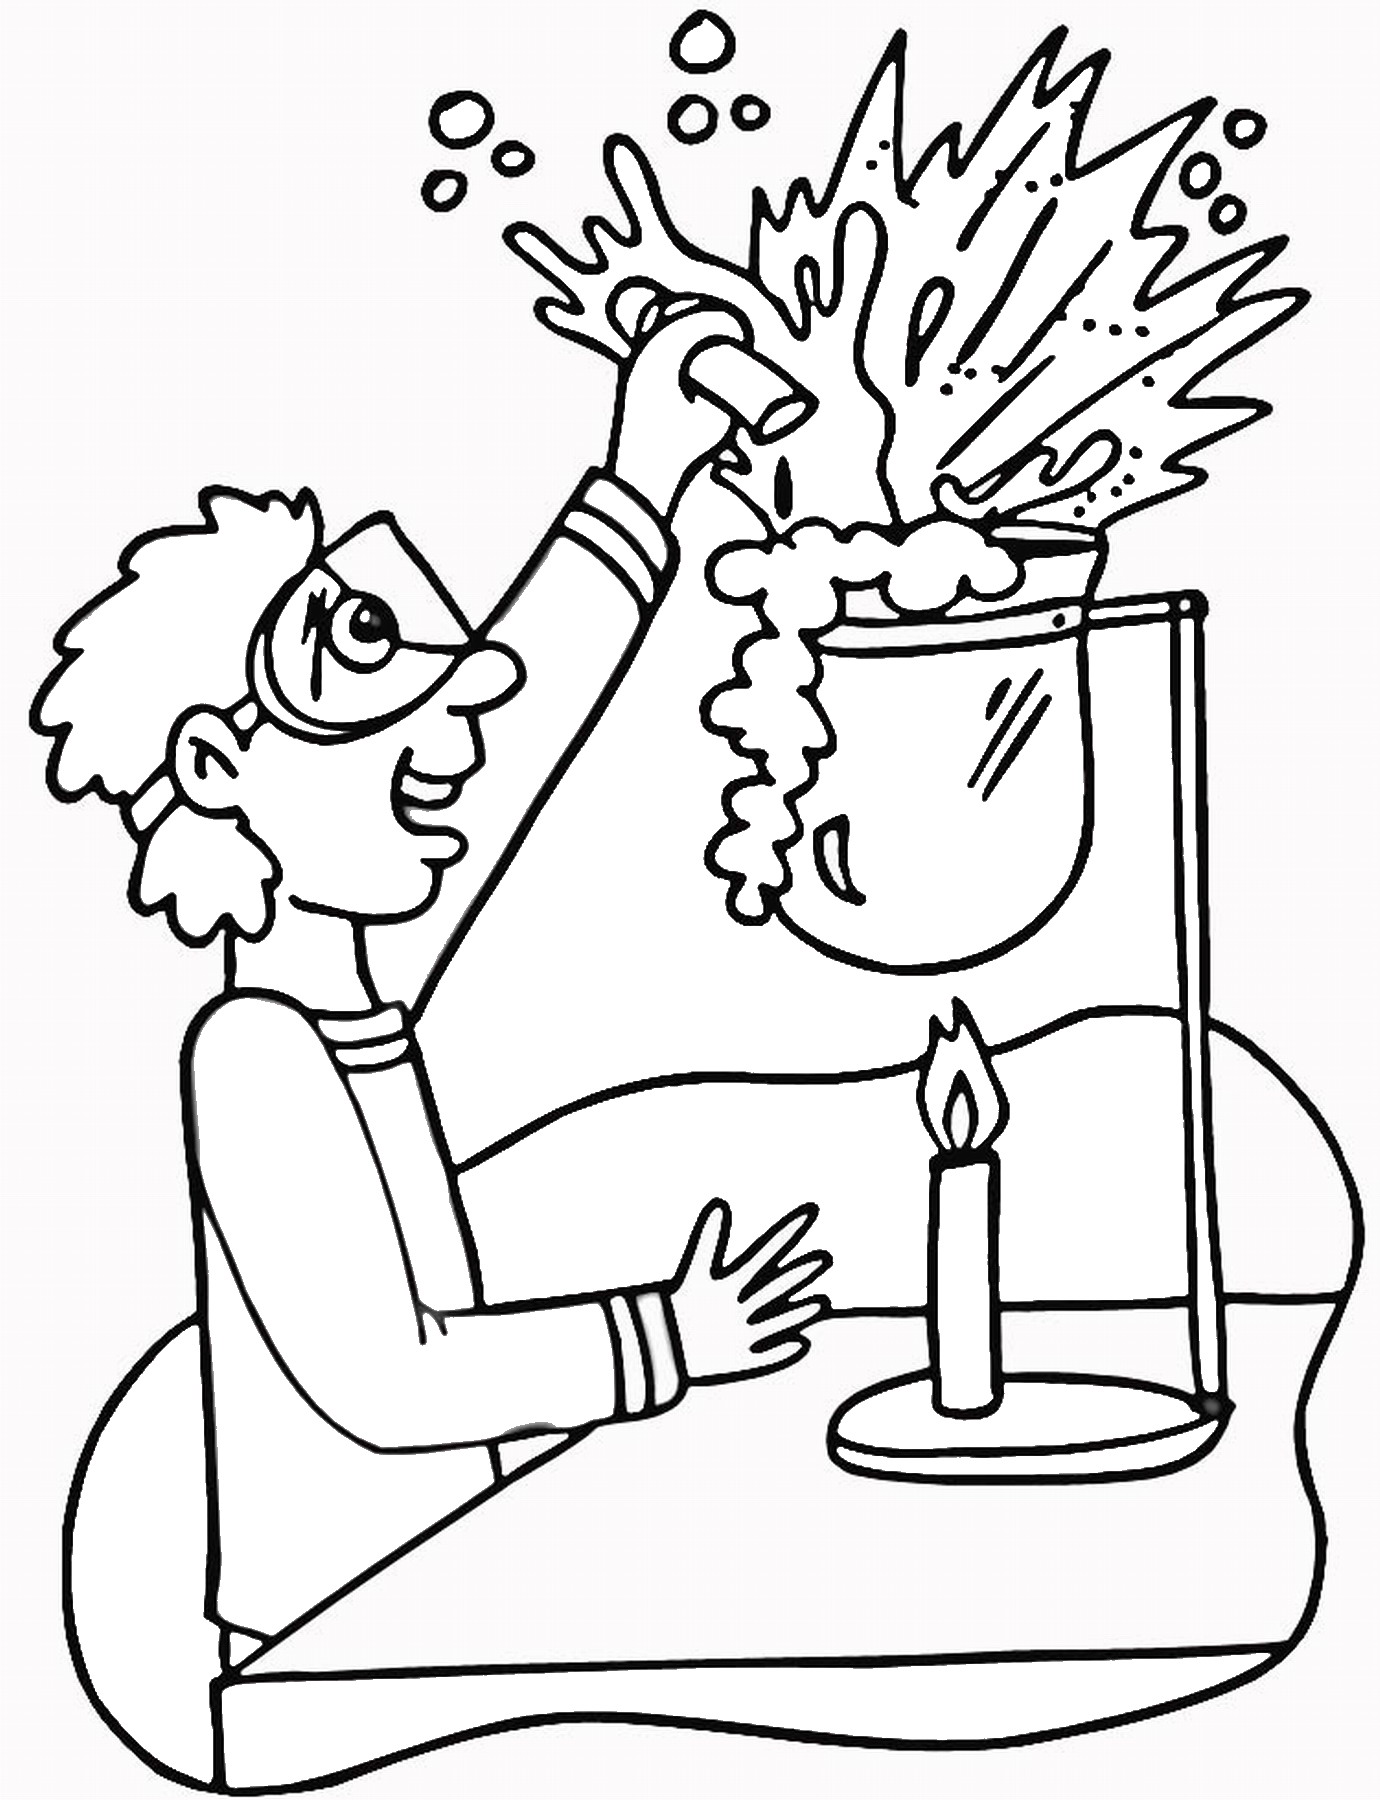 science themed coloring pages science coloring pages birthday printable science coloring pages themed